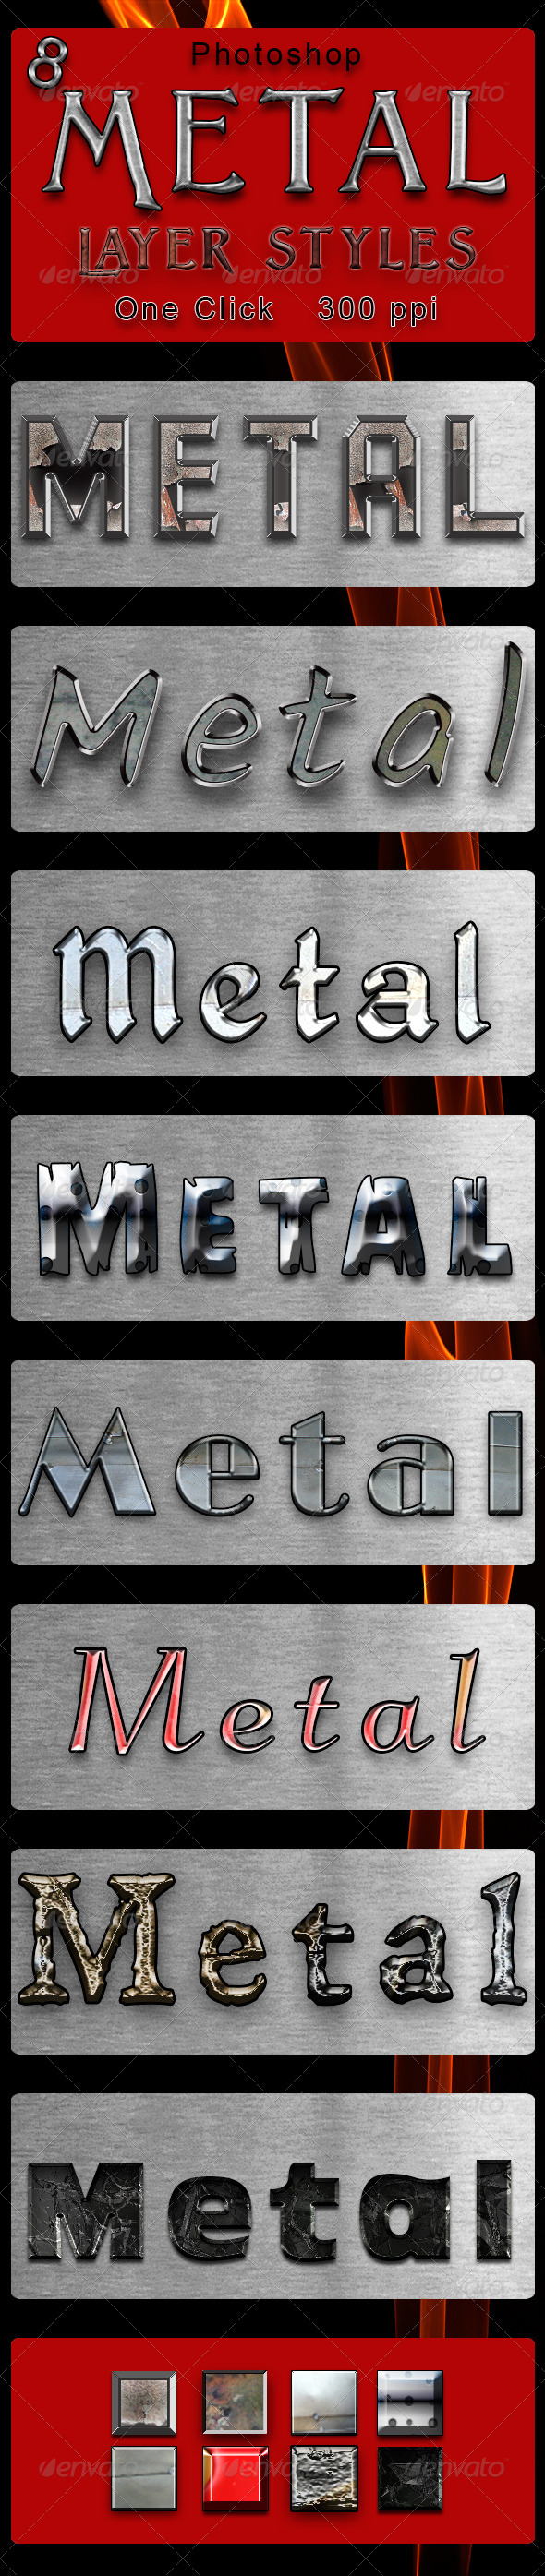 GraphicRiver 8 Metal Layer Styles 8740762